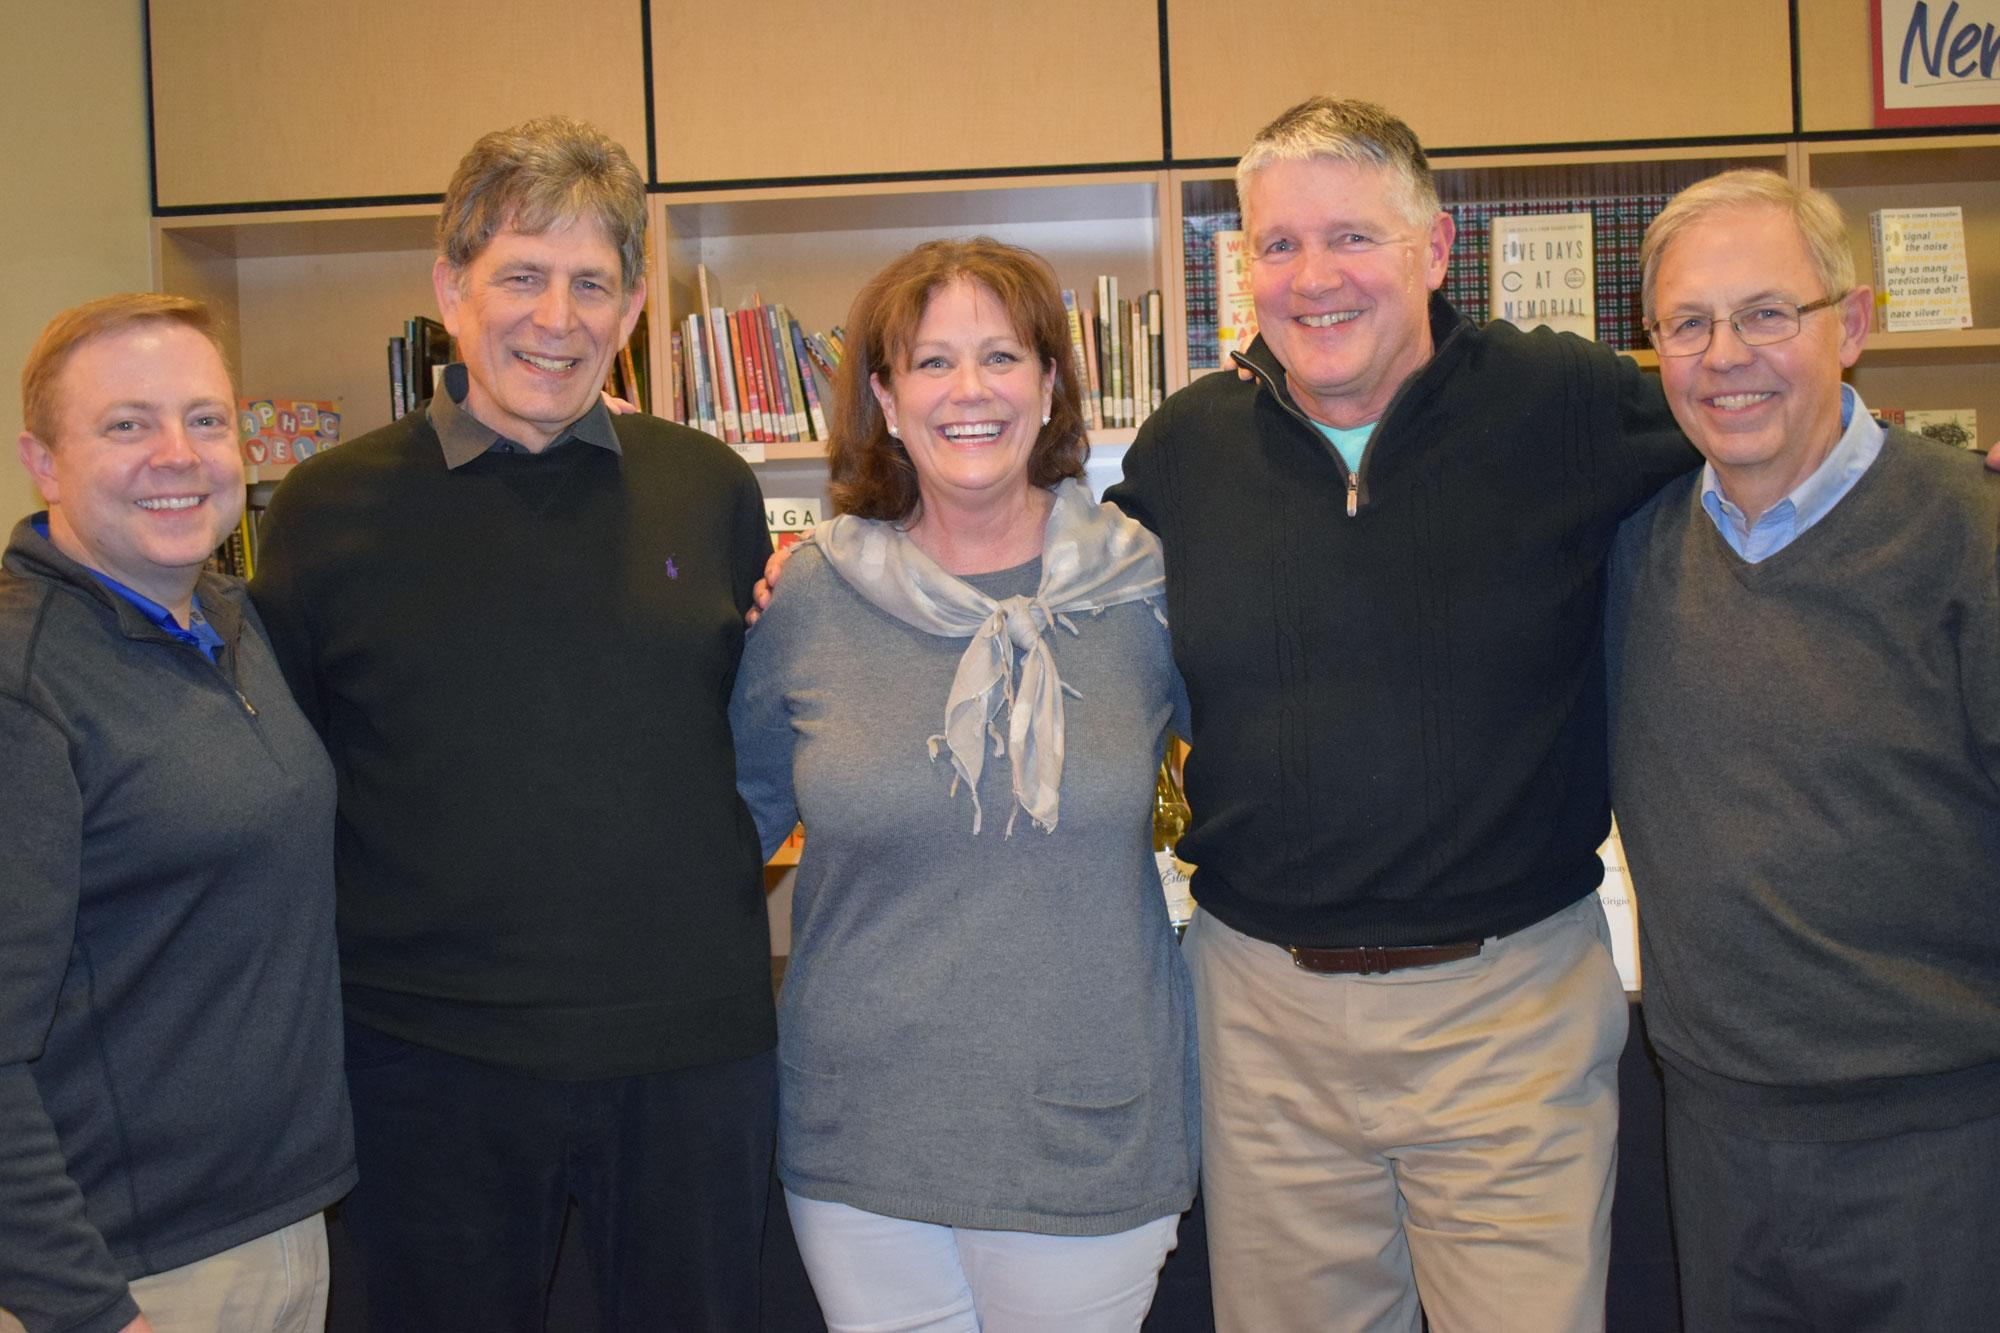 Denise with former principals and presidents